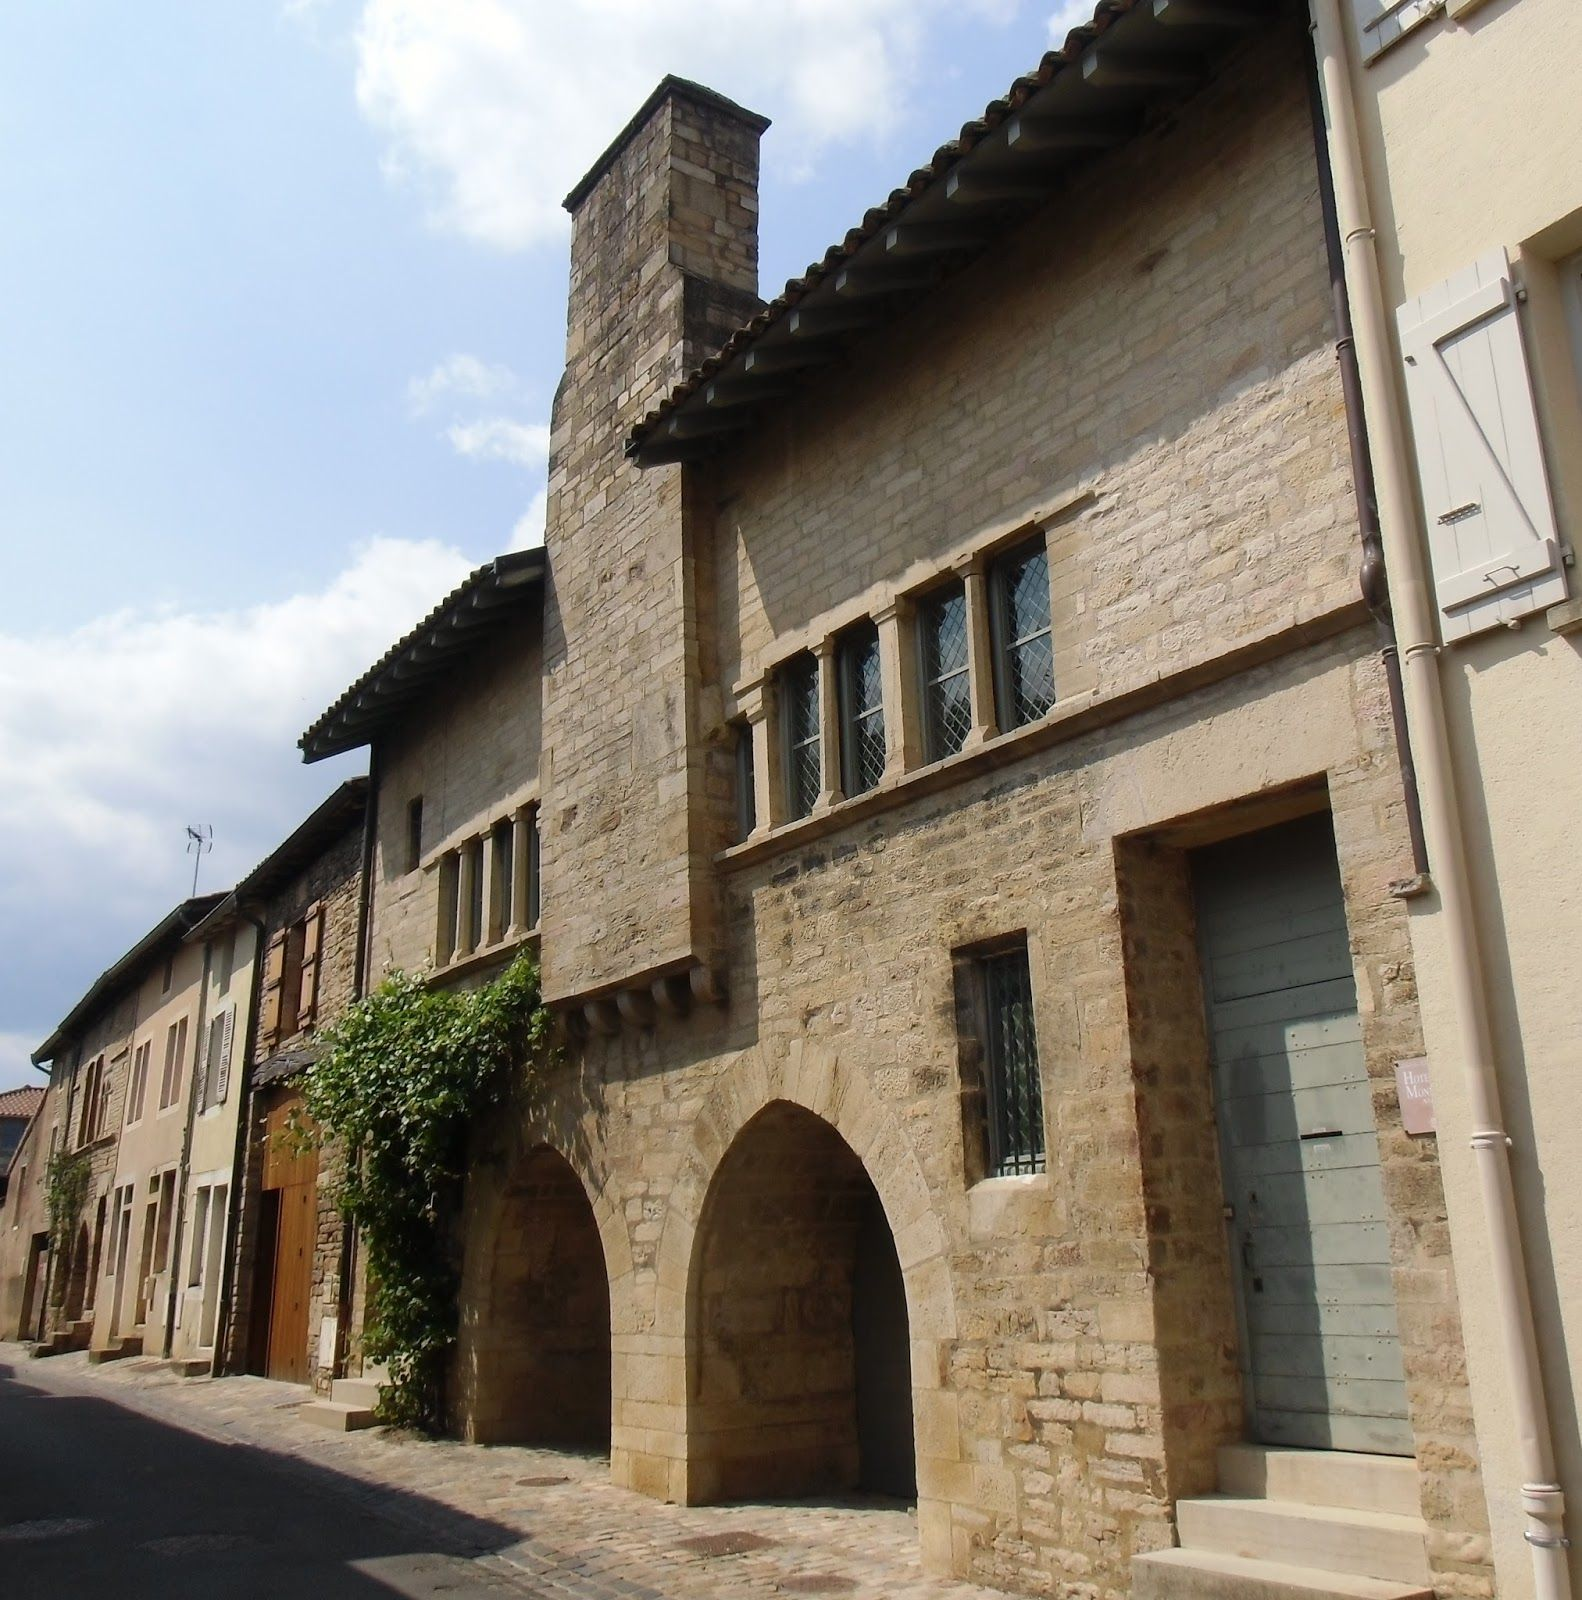 maison romane rue d avril Cluny fin XIIe si¨cle France me val